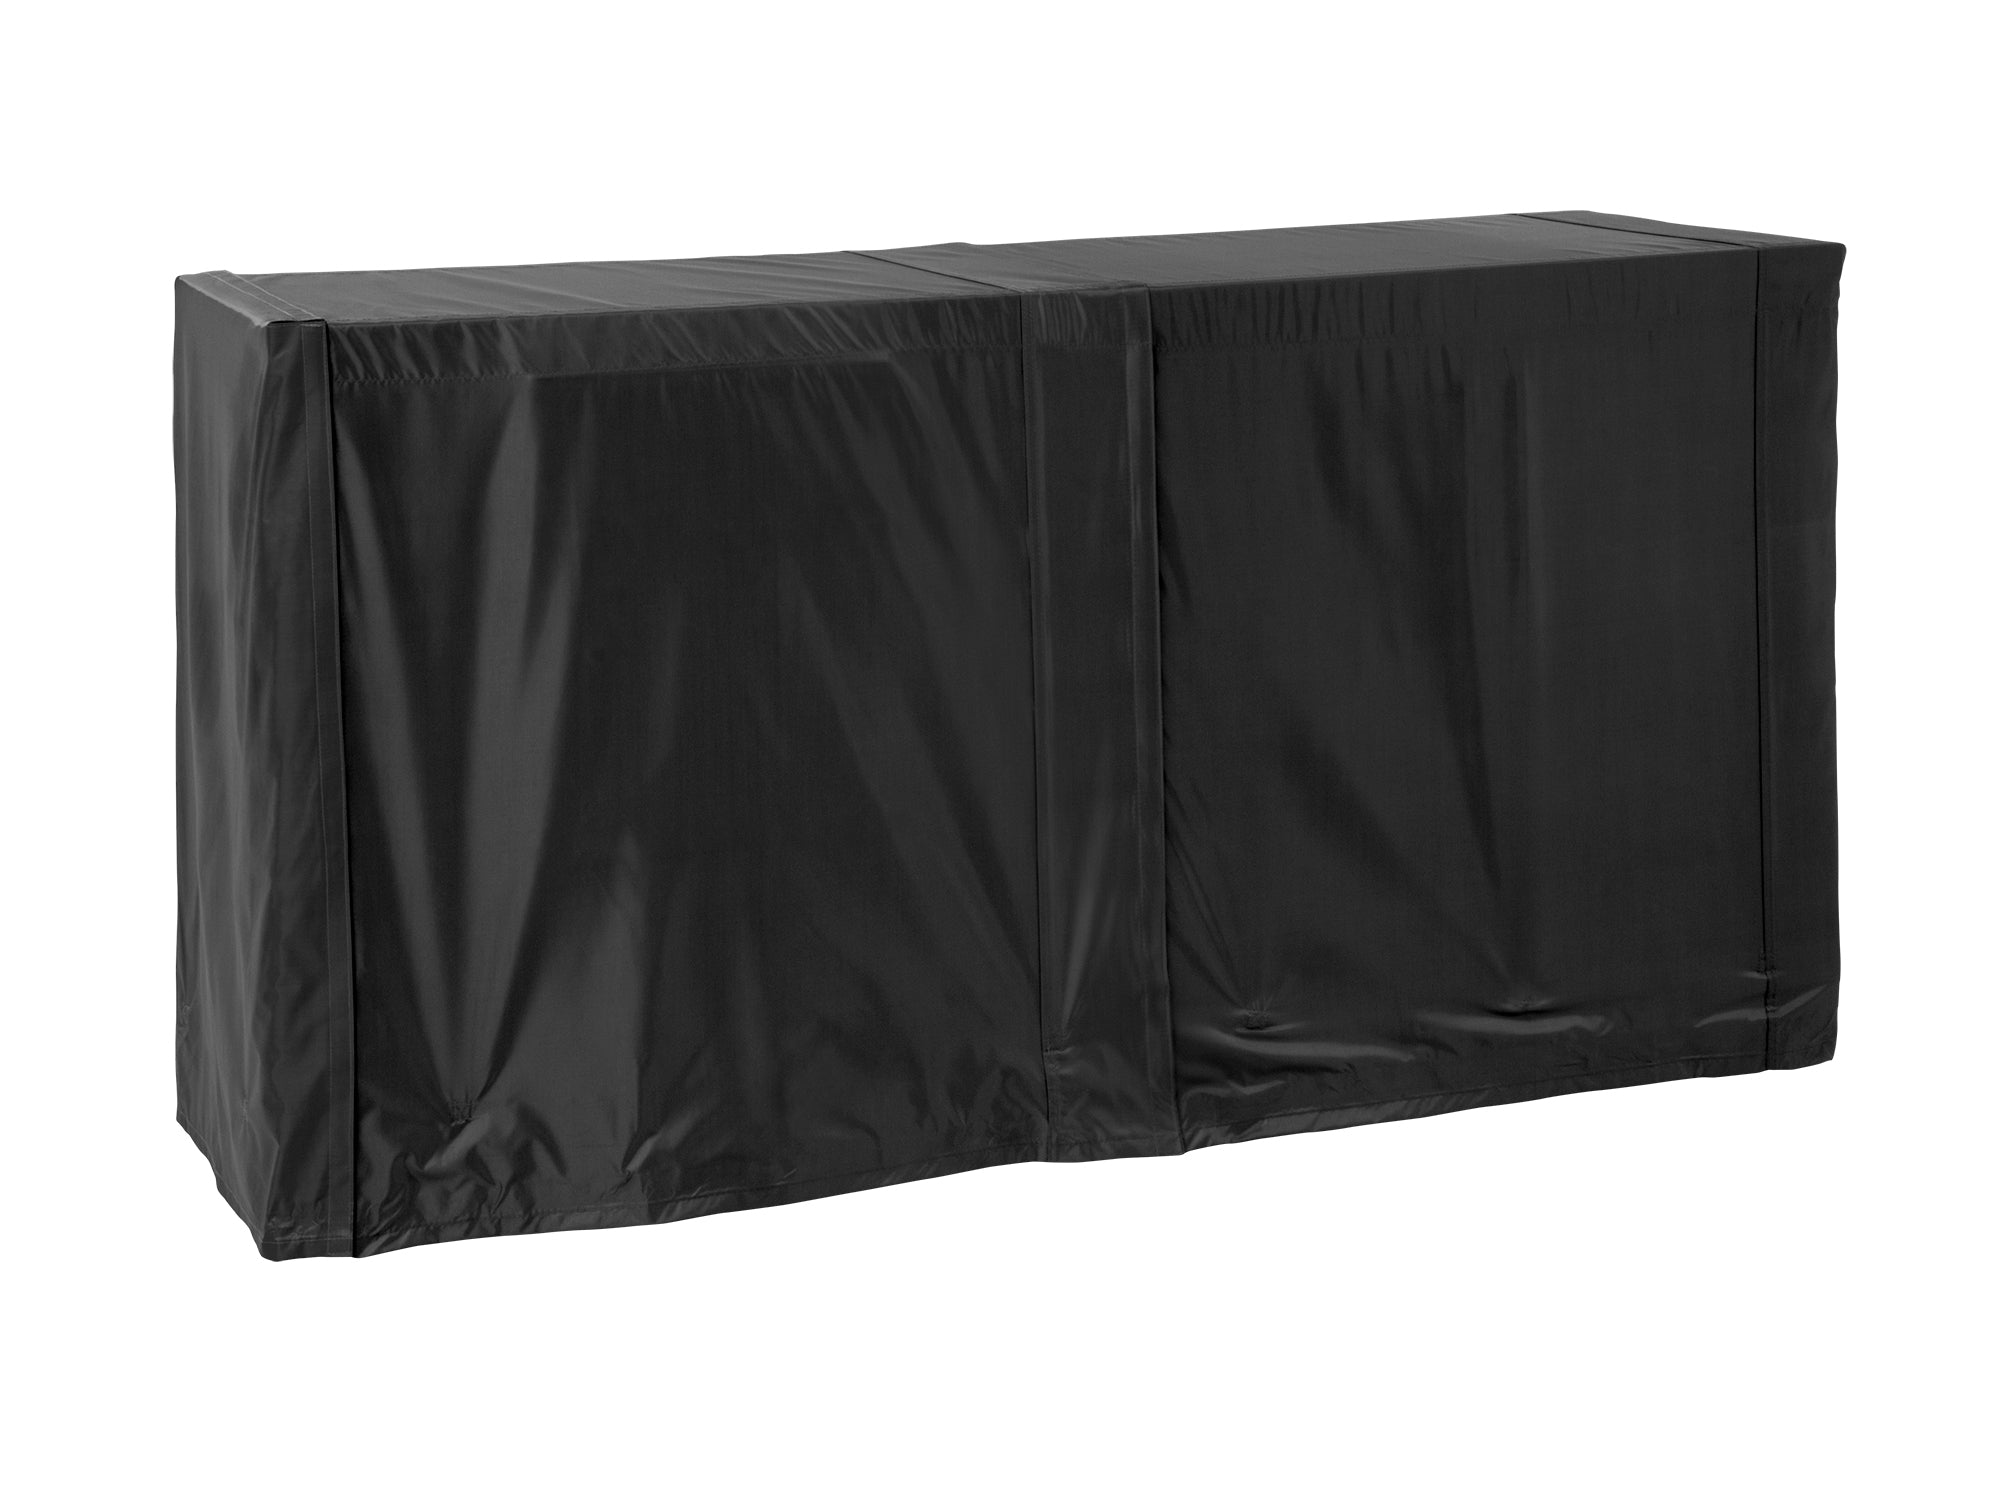 Outdoor Kitchen All-Season Cover Bundle: 64 in. Cover, 28